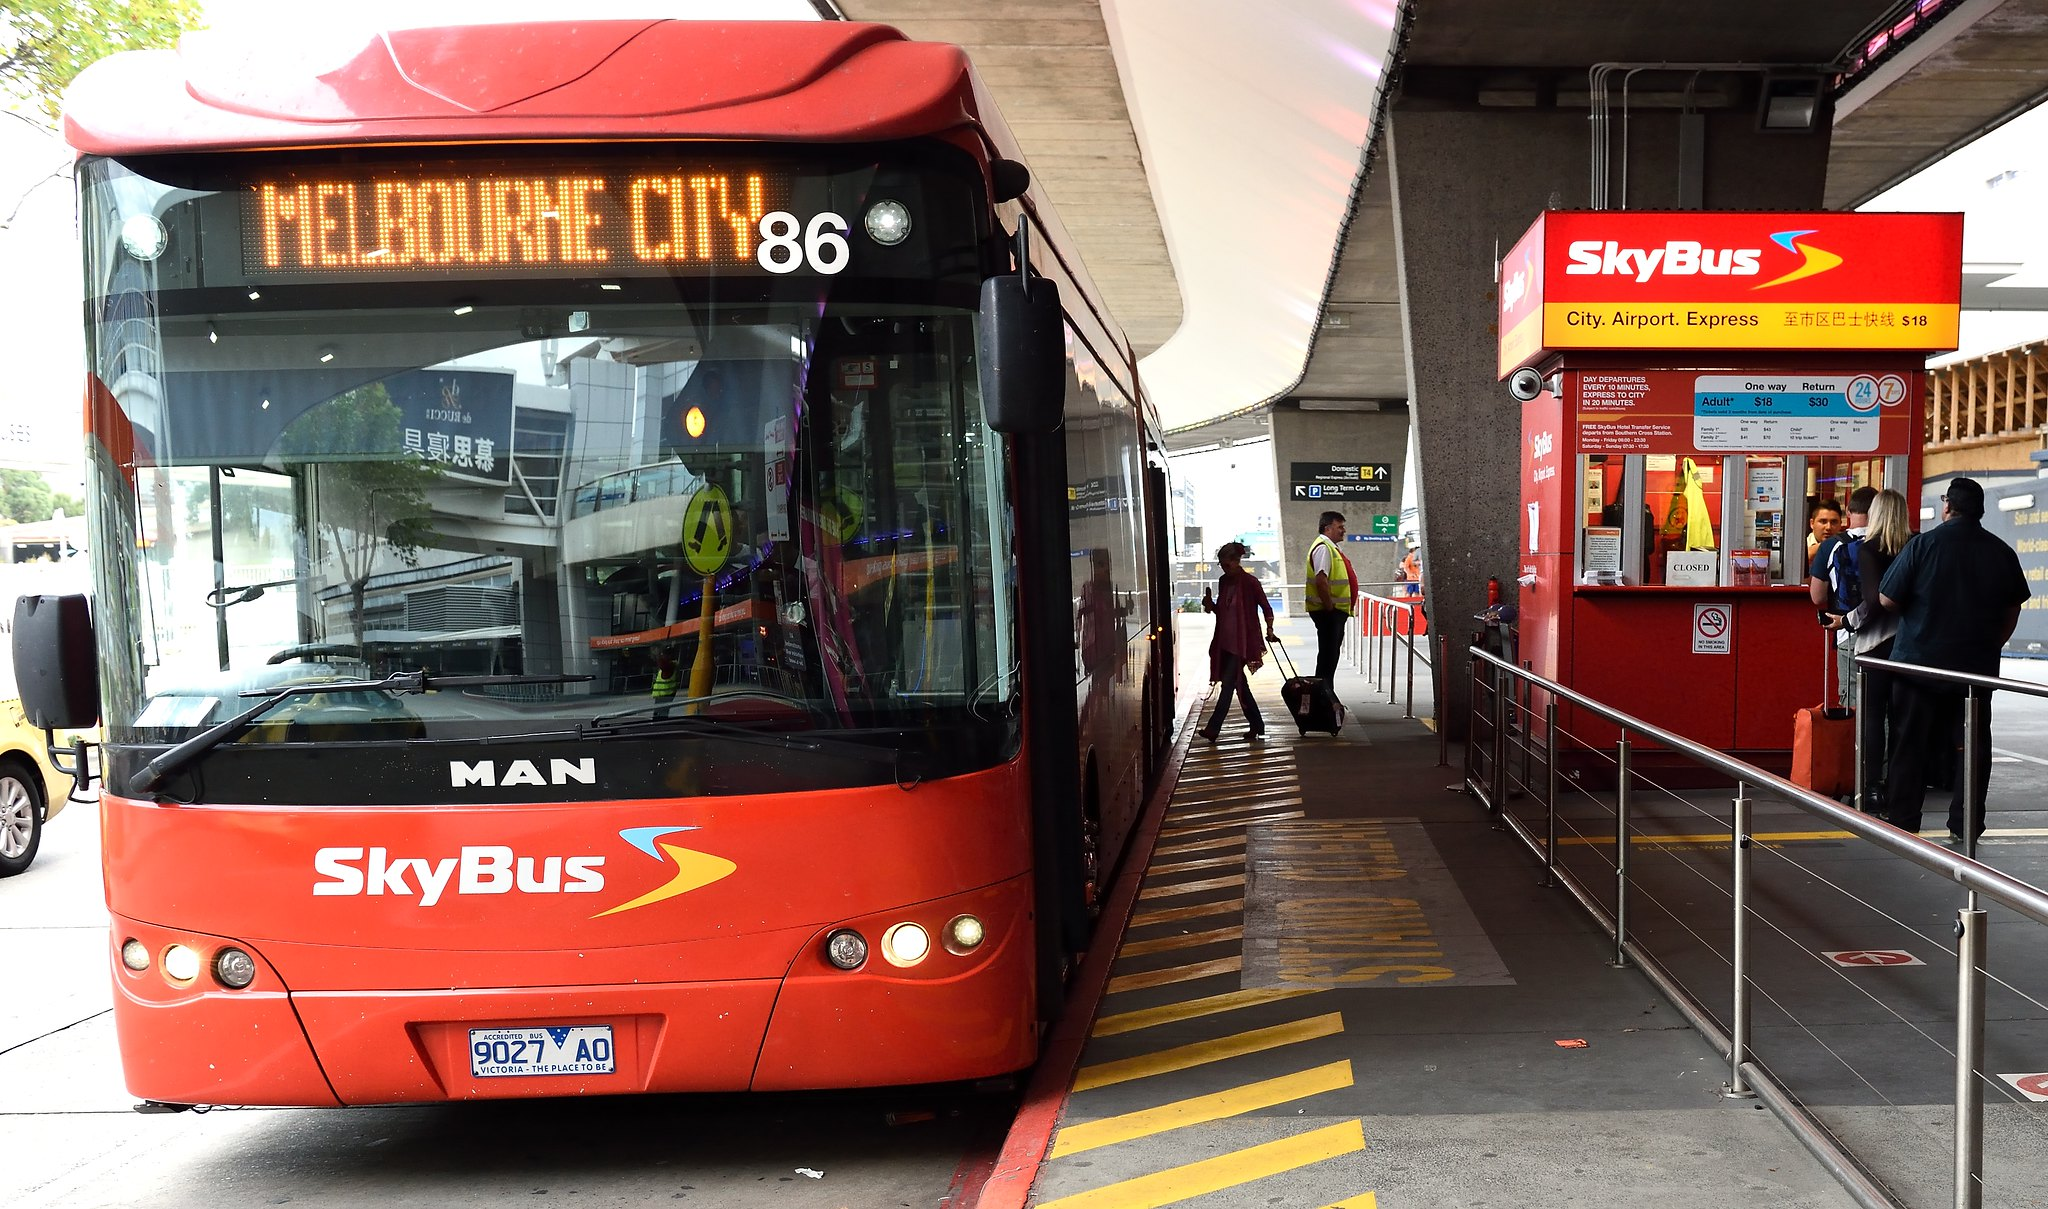 Airport express SkyBus at Melbourne Airport